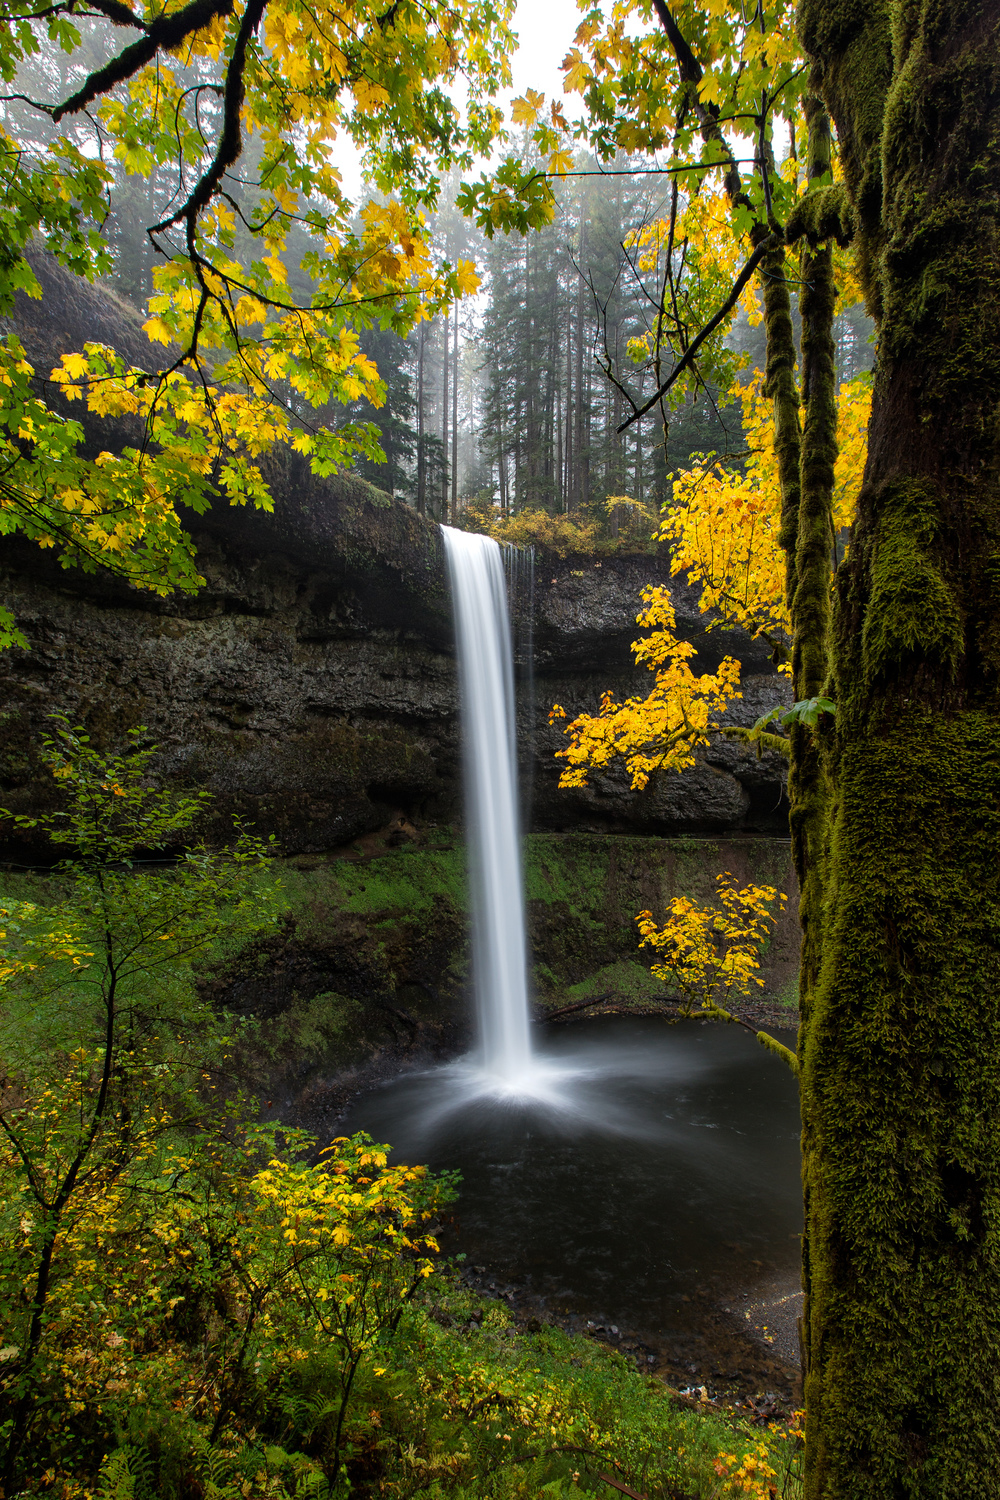 Autumn Gold at Silver Falls